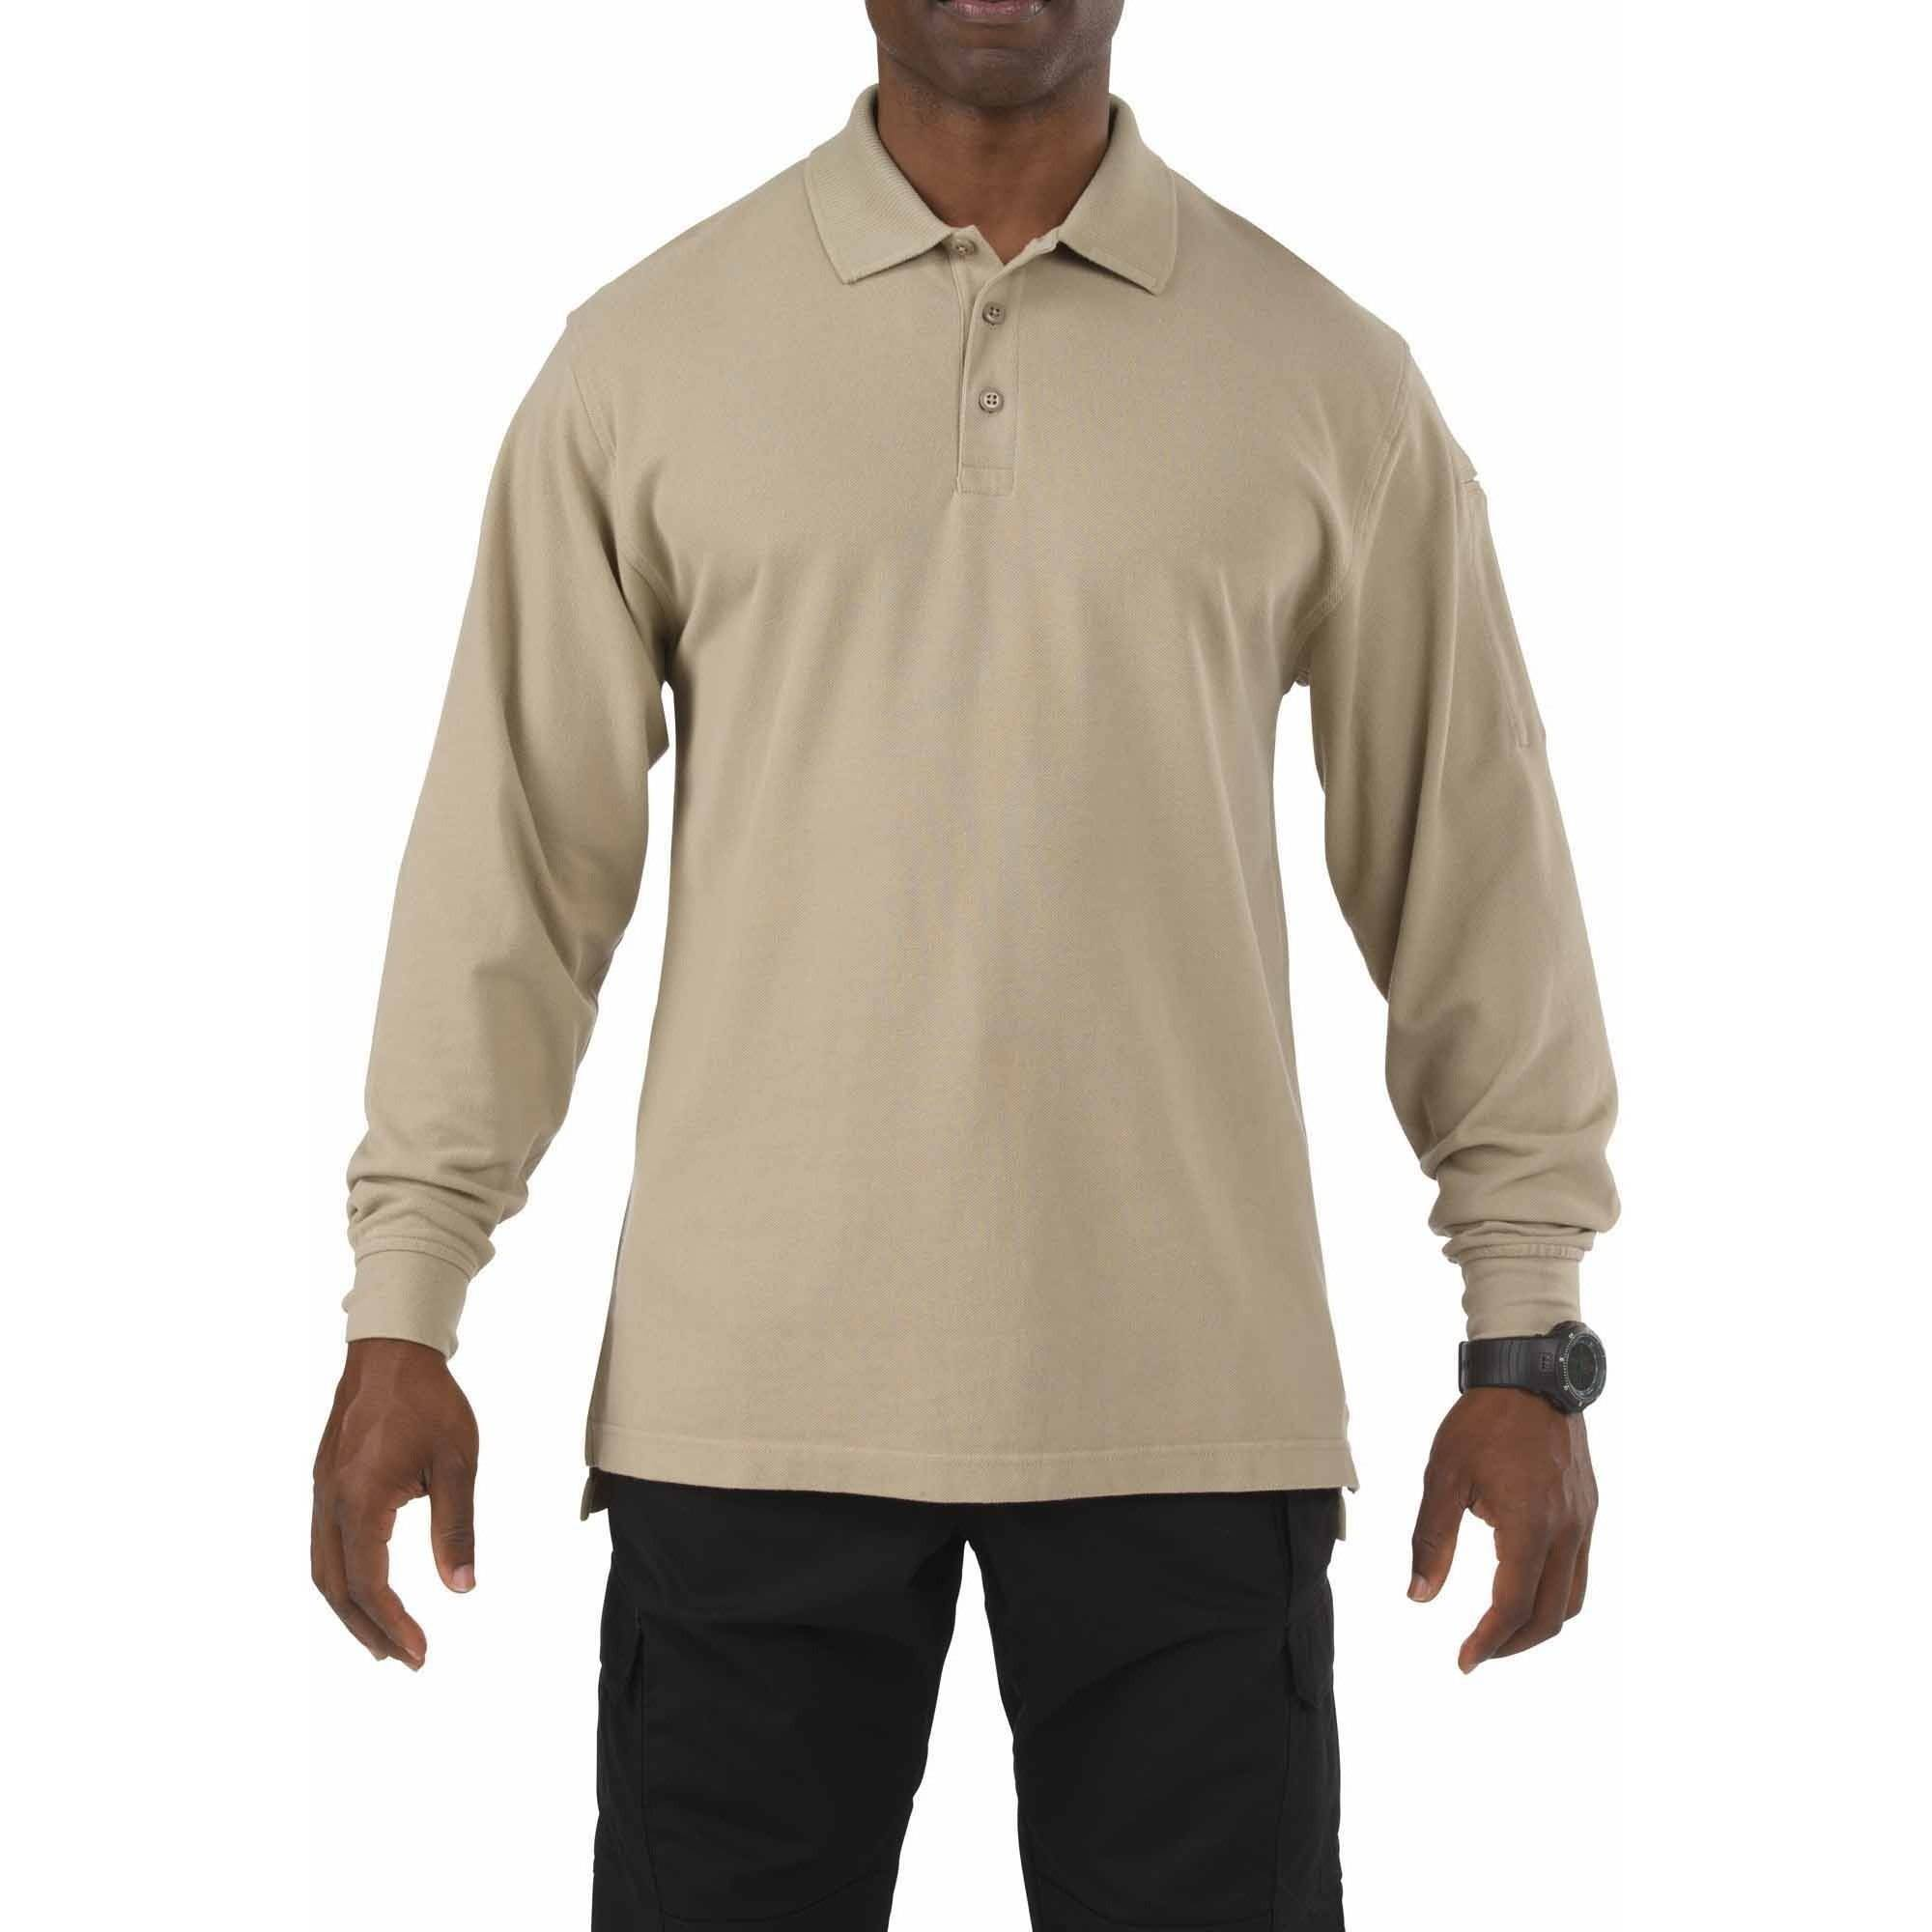 Long Sleeve Professional Polo Shirt, Silver Tan, Tall